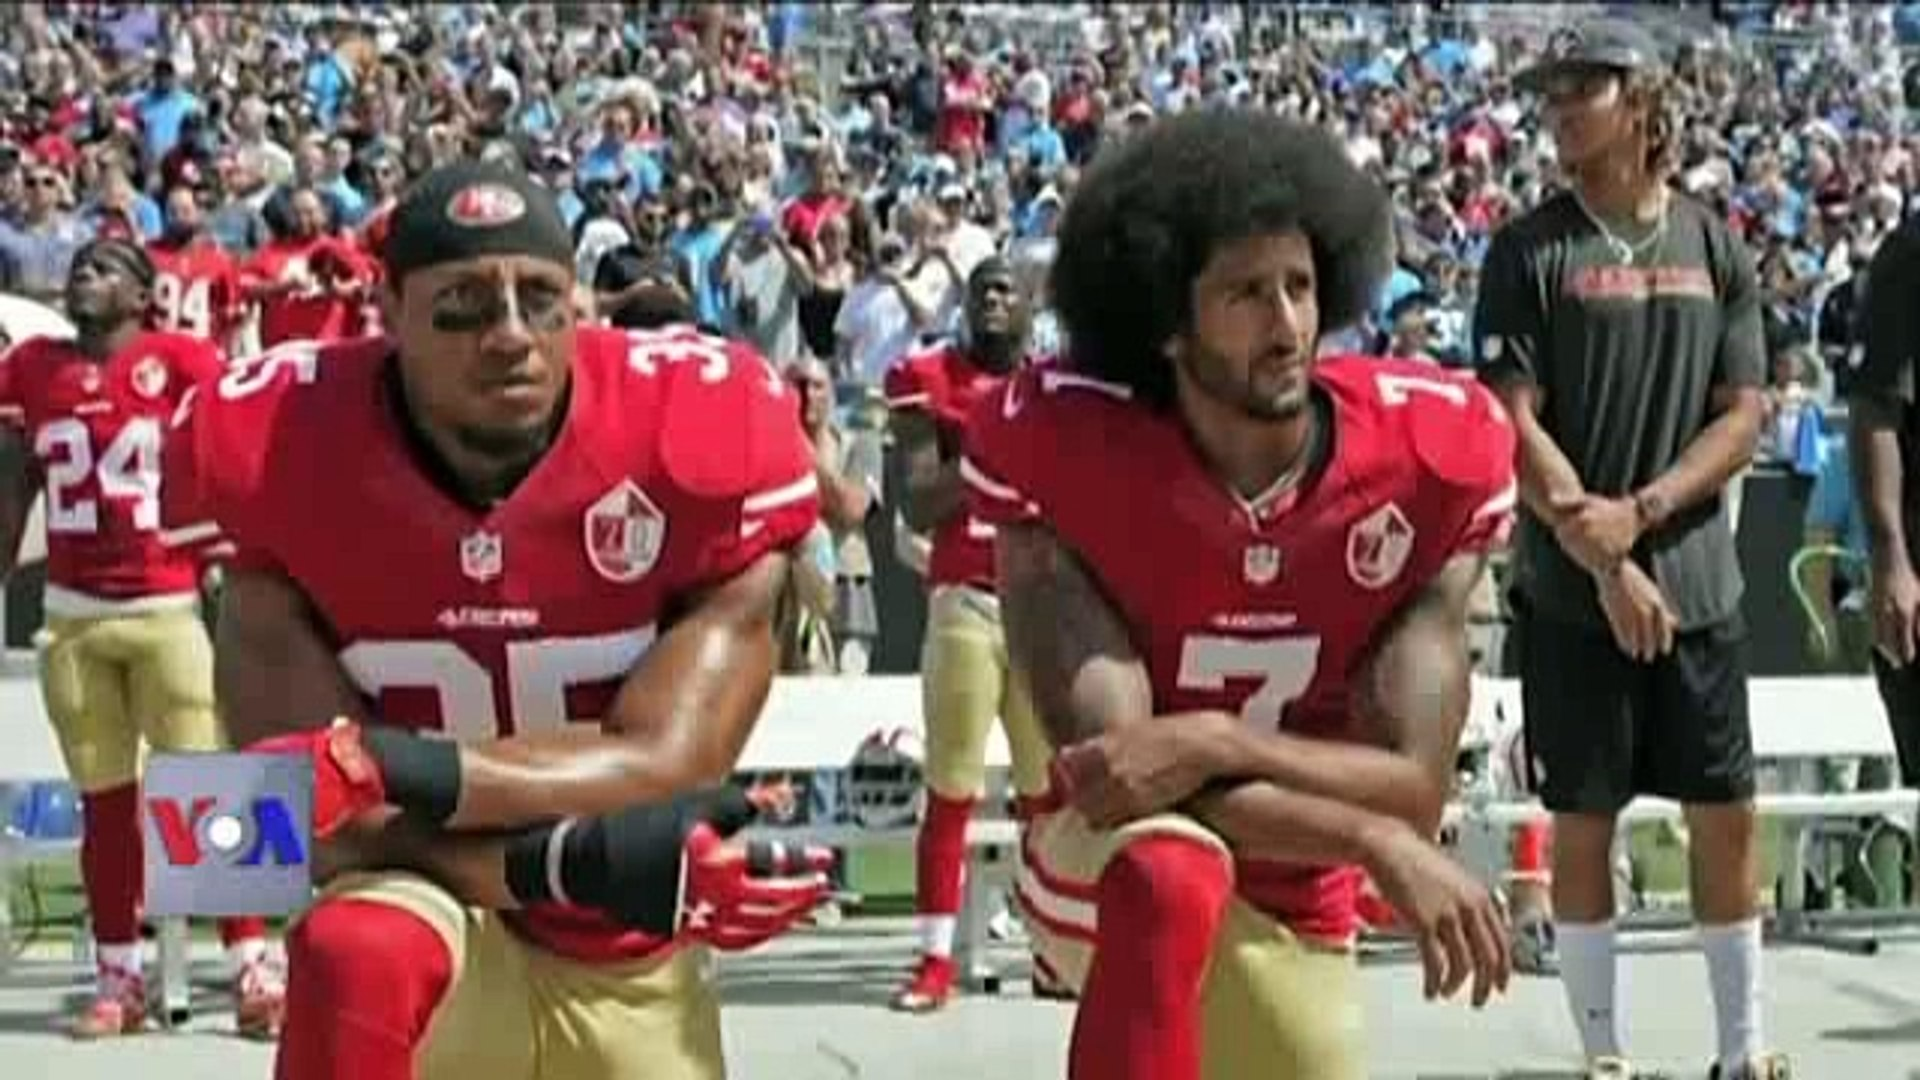 Pakistani-American owner of NFL team joins players in Trump protest